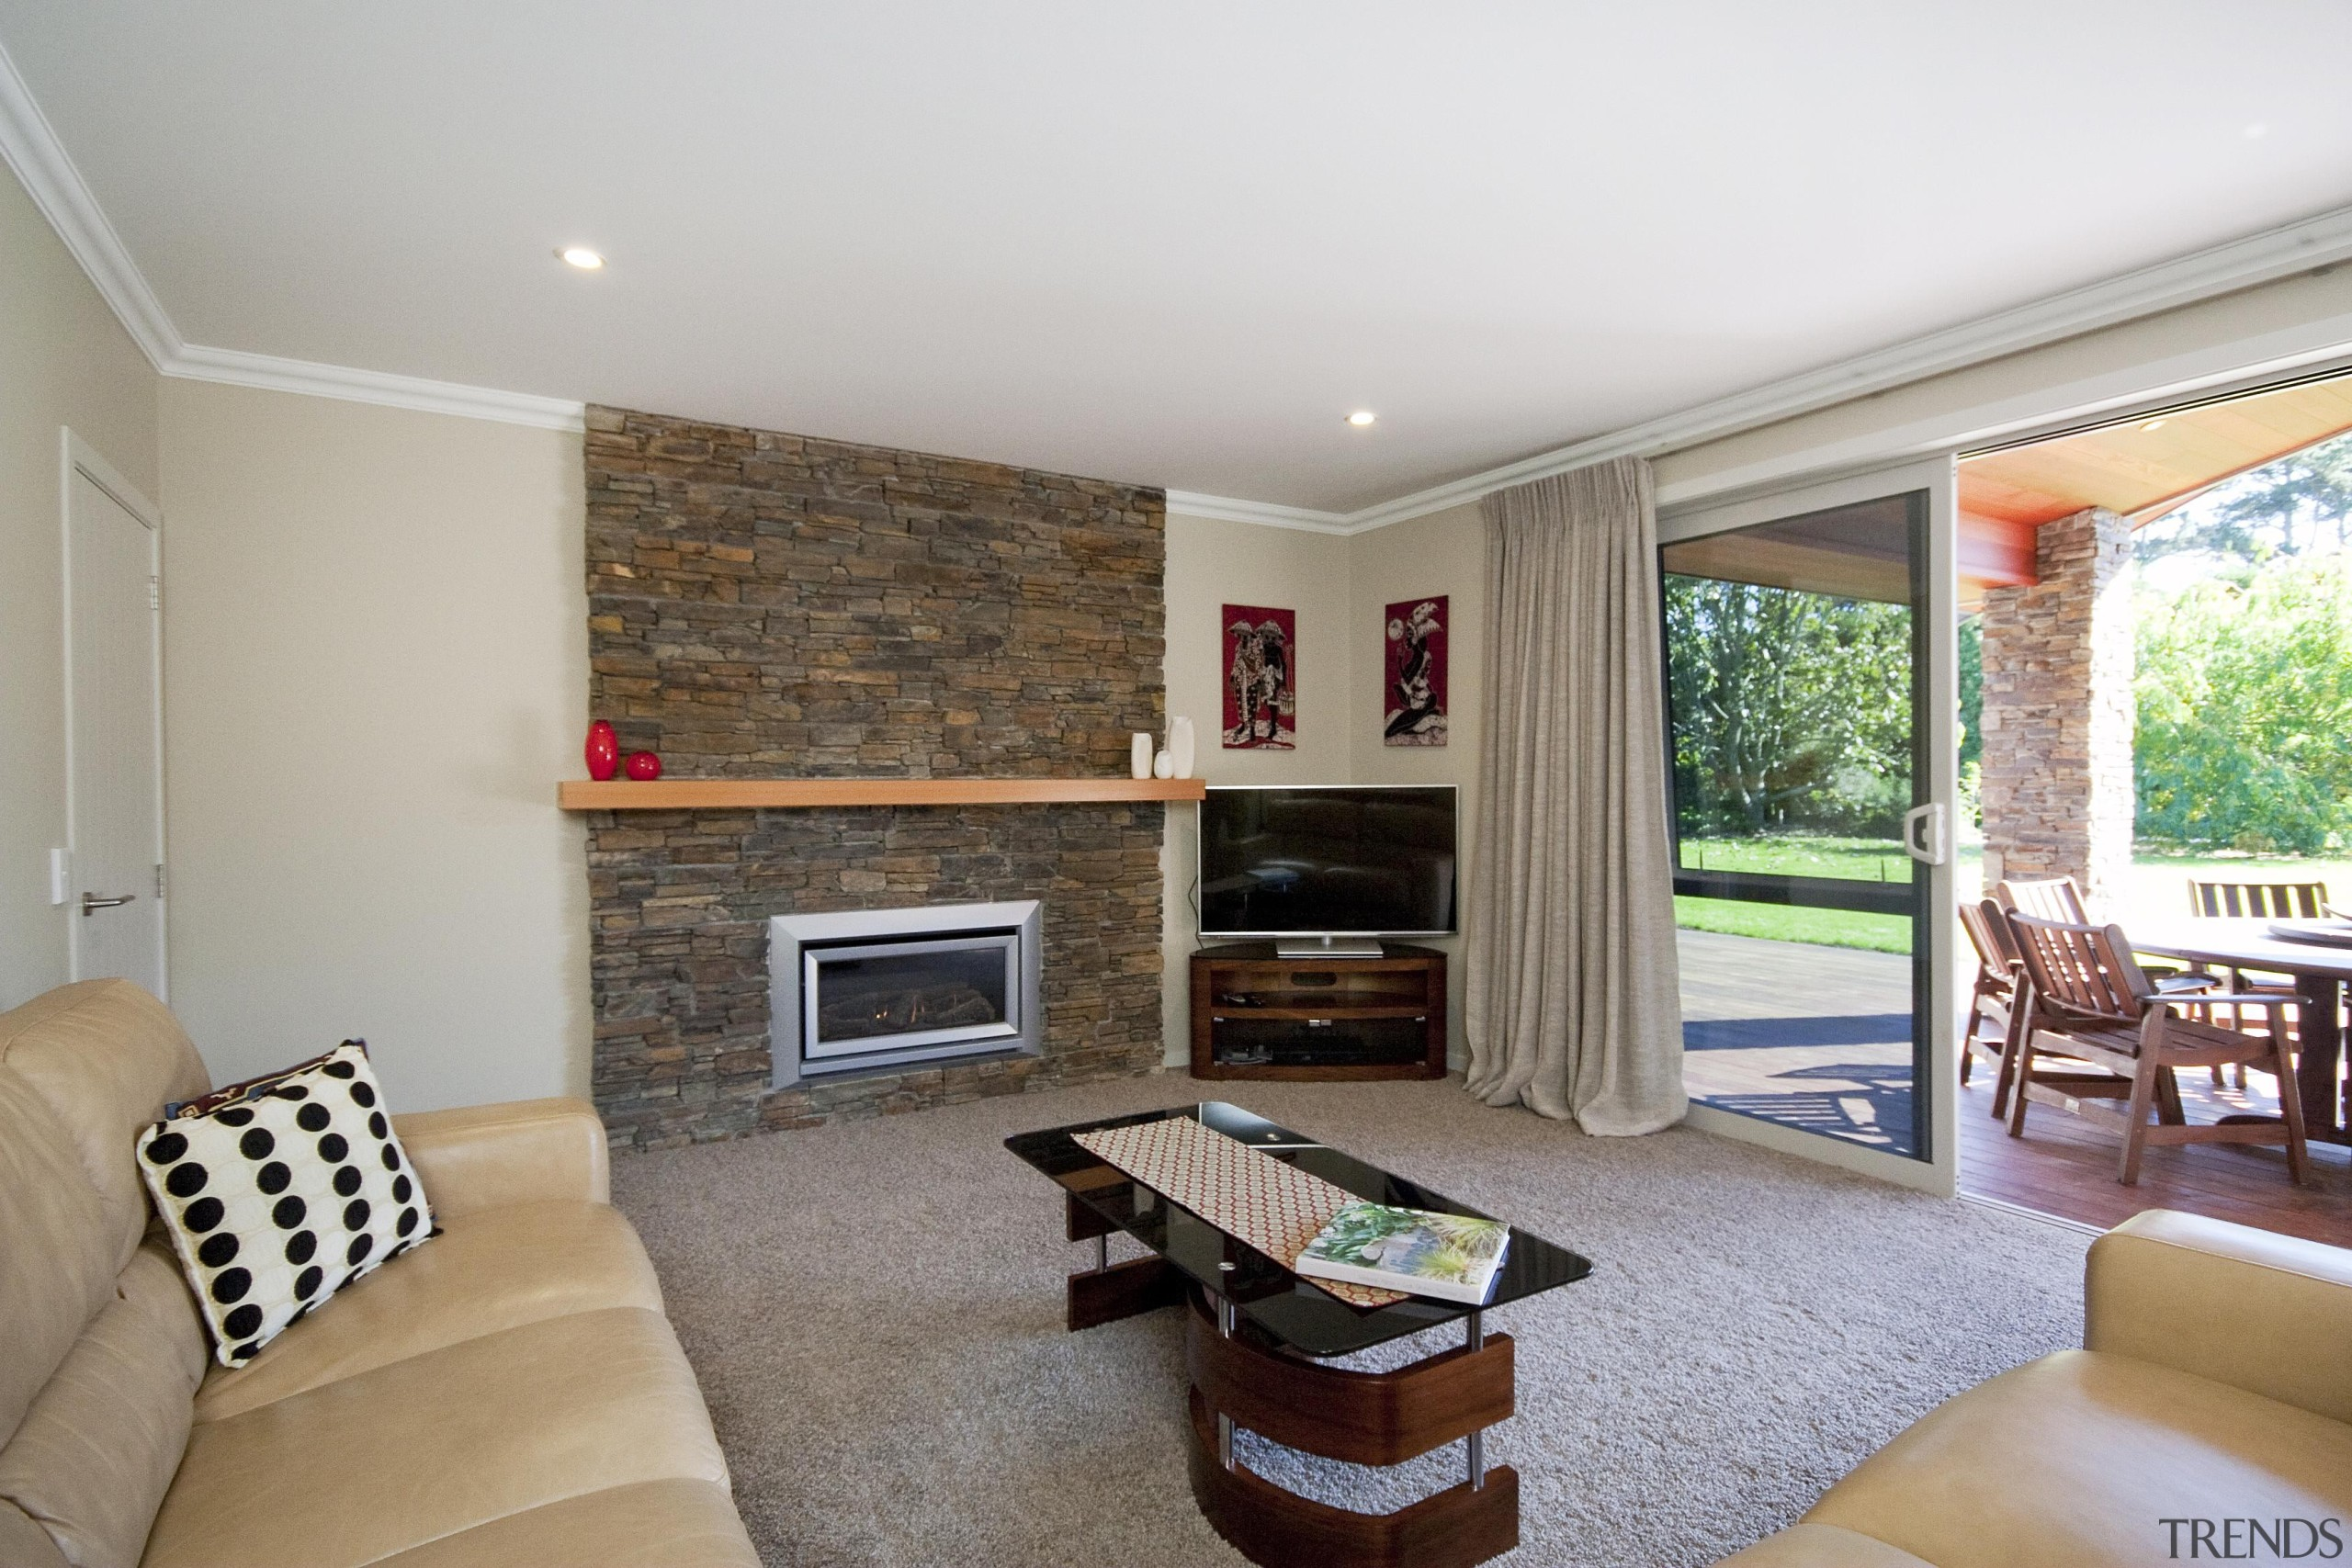 Feature wall and fireplace in a living area ceiling, estate, home, house, interior design, living room, property, real estate, room, gray